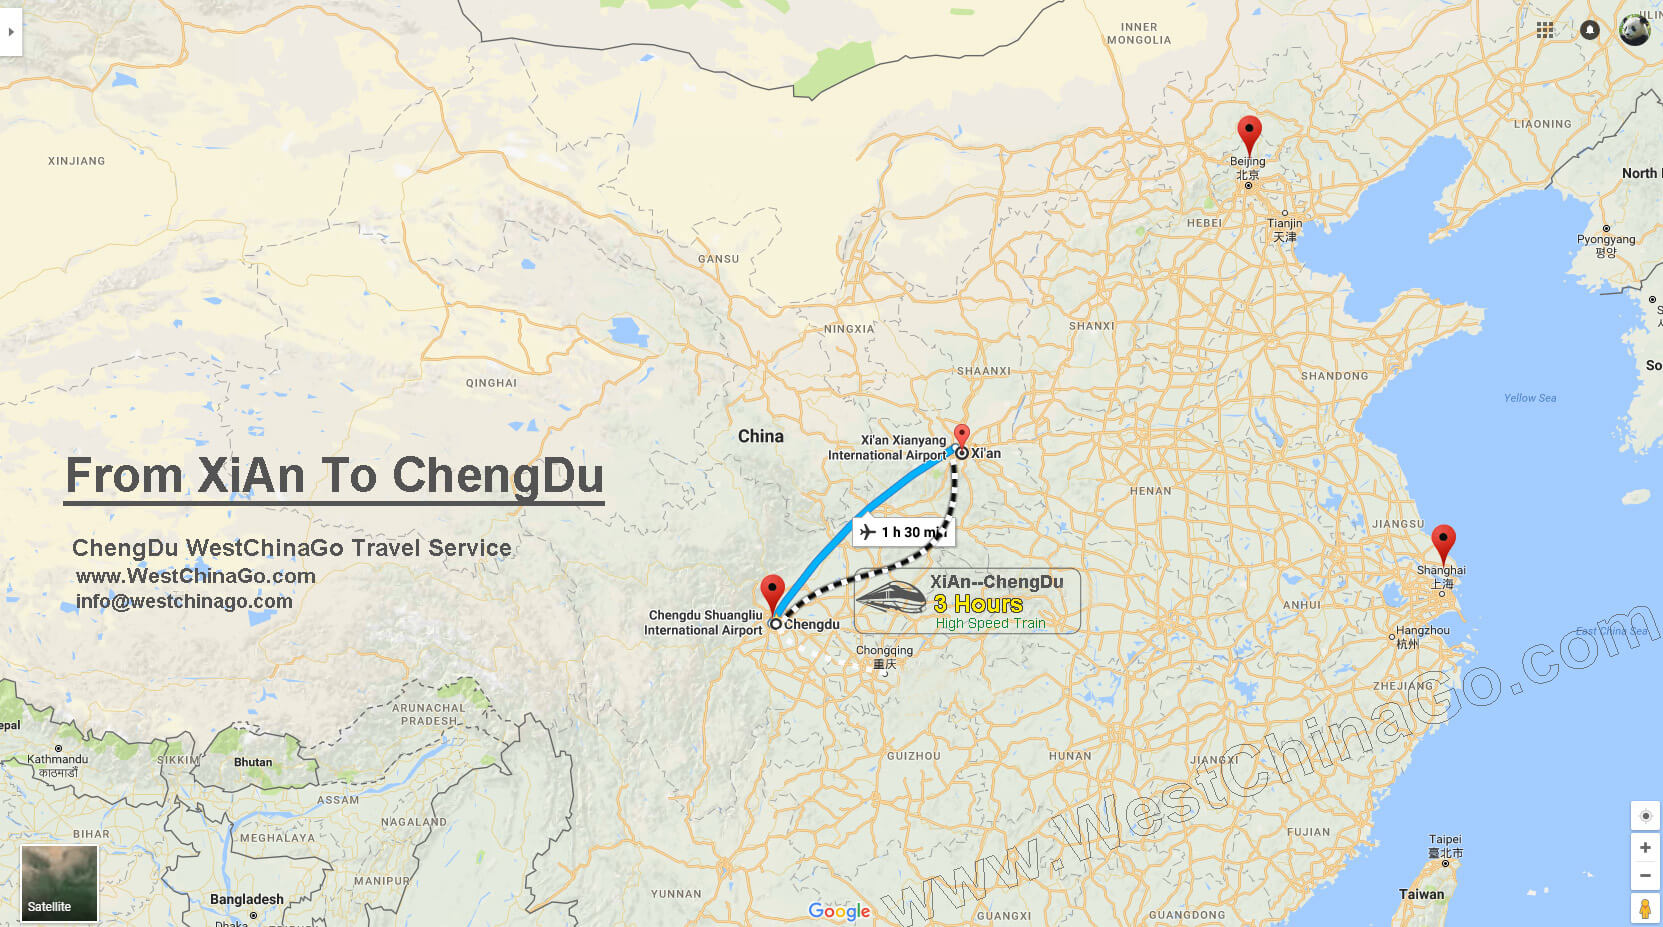 xian-chengdu high-speed rail